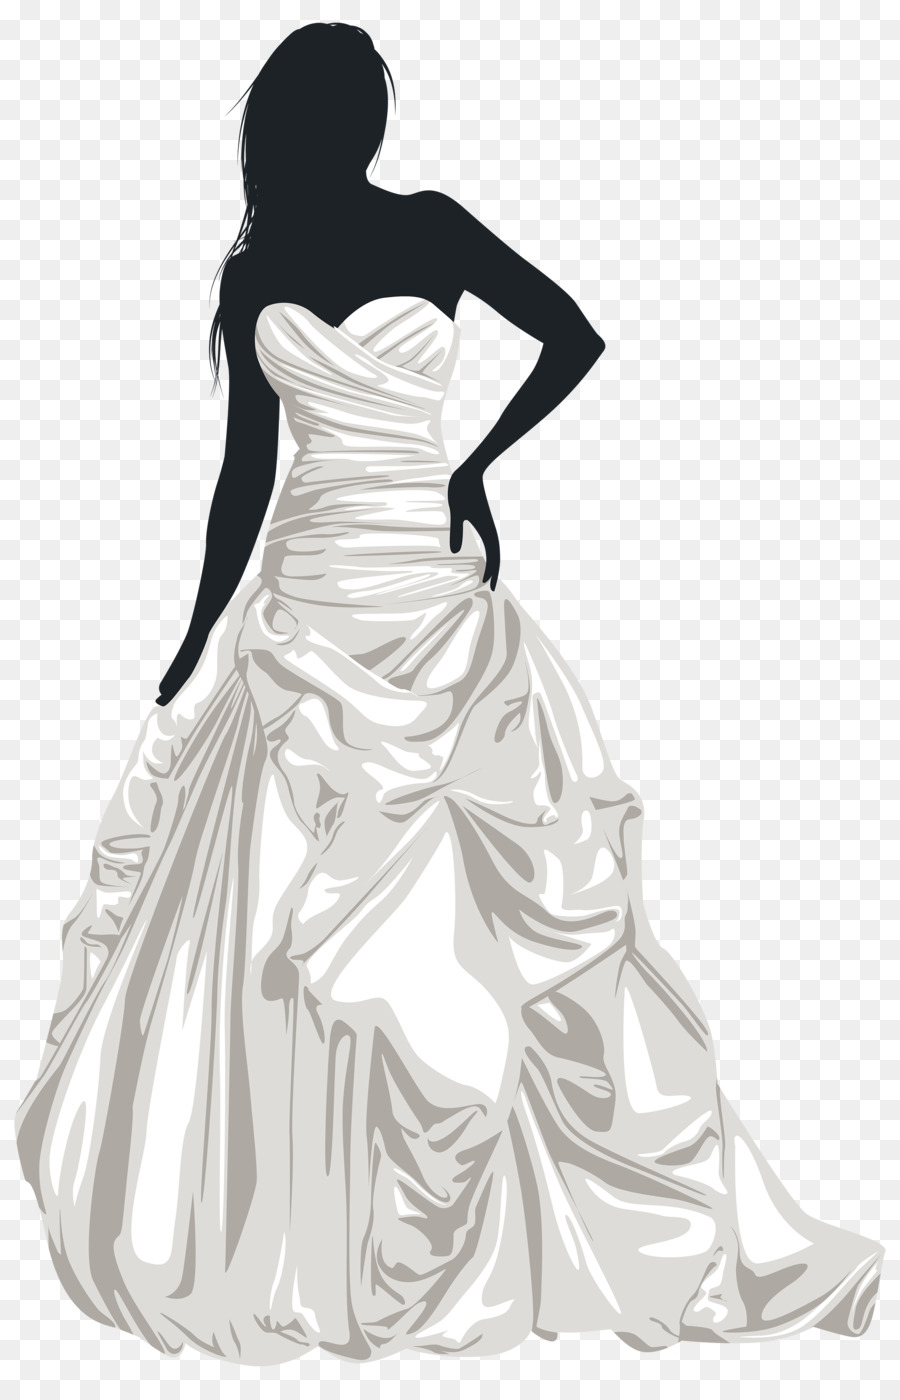 Bride Silhouette Wedding dress Clip art - wedding dress png download ...